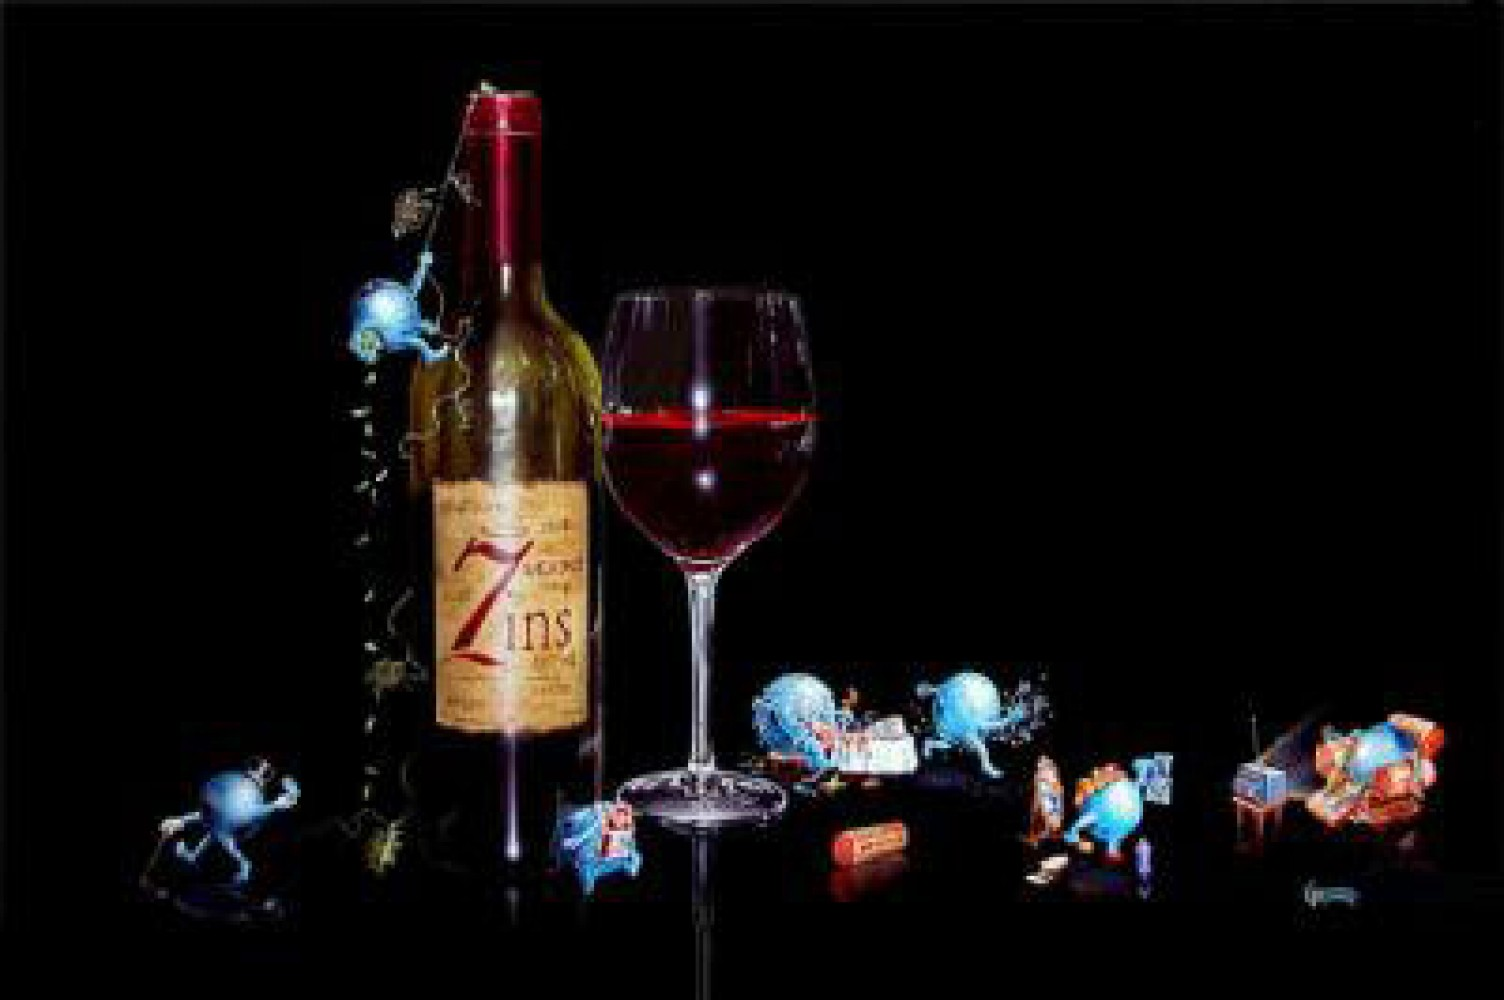 7 Deadly Zin's 2003